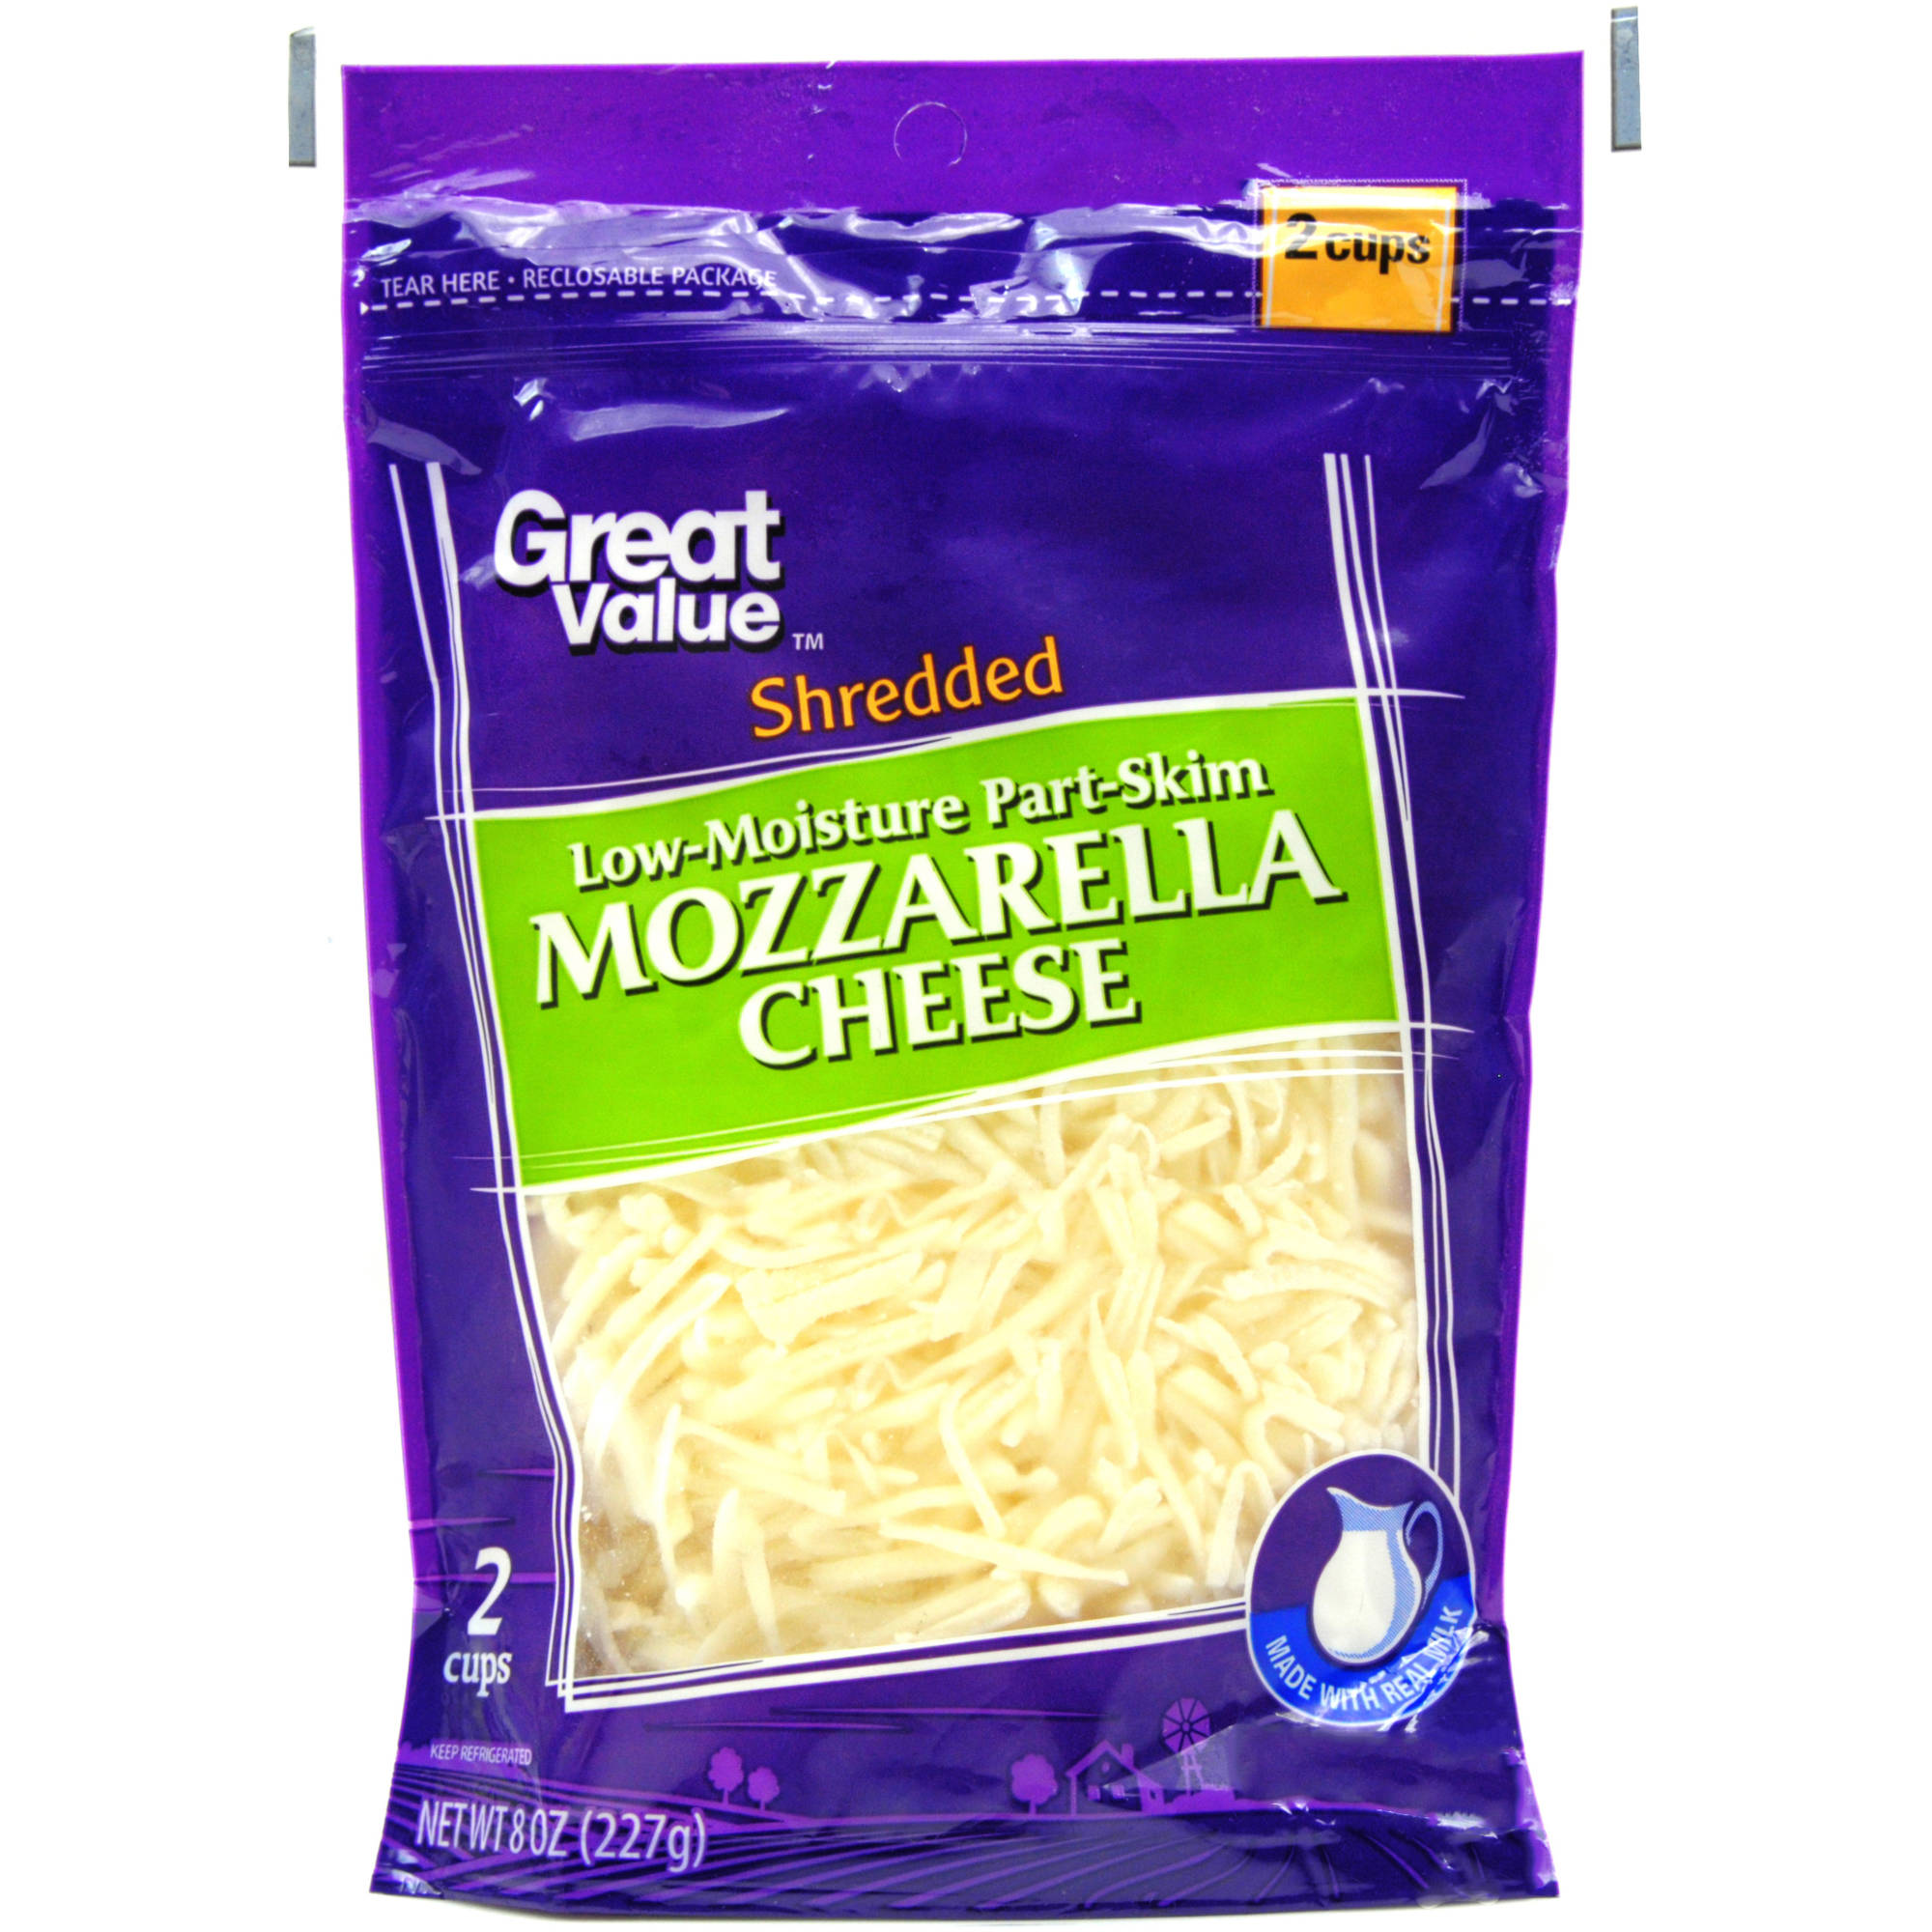 Great Value: Shredded Mozzarella Cheese, 8 Oz